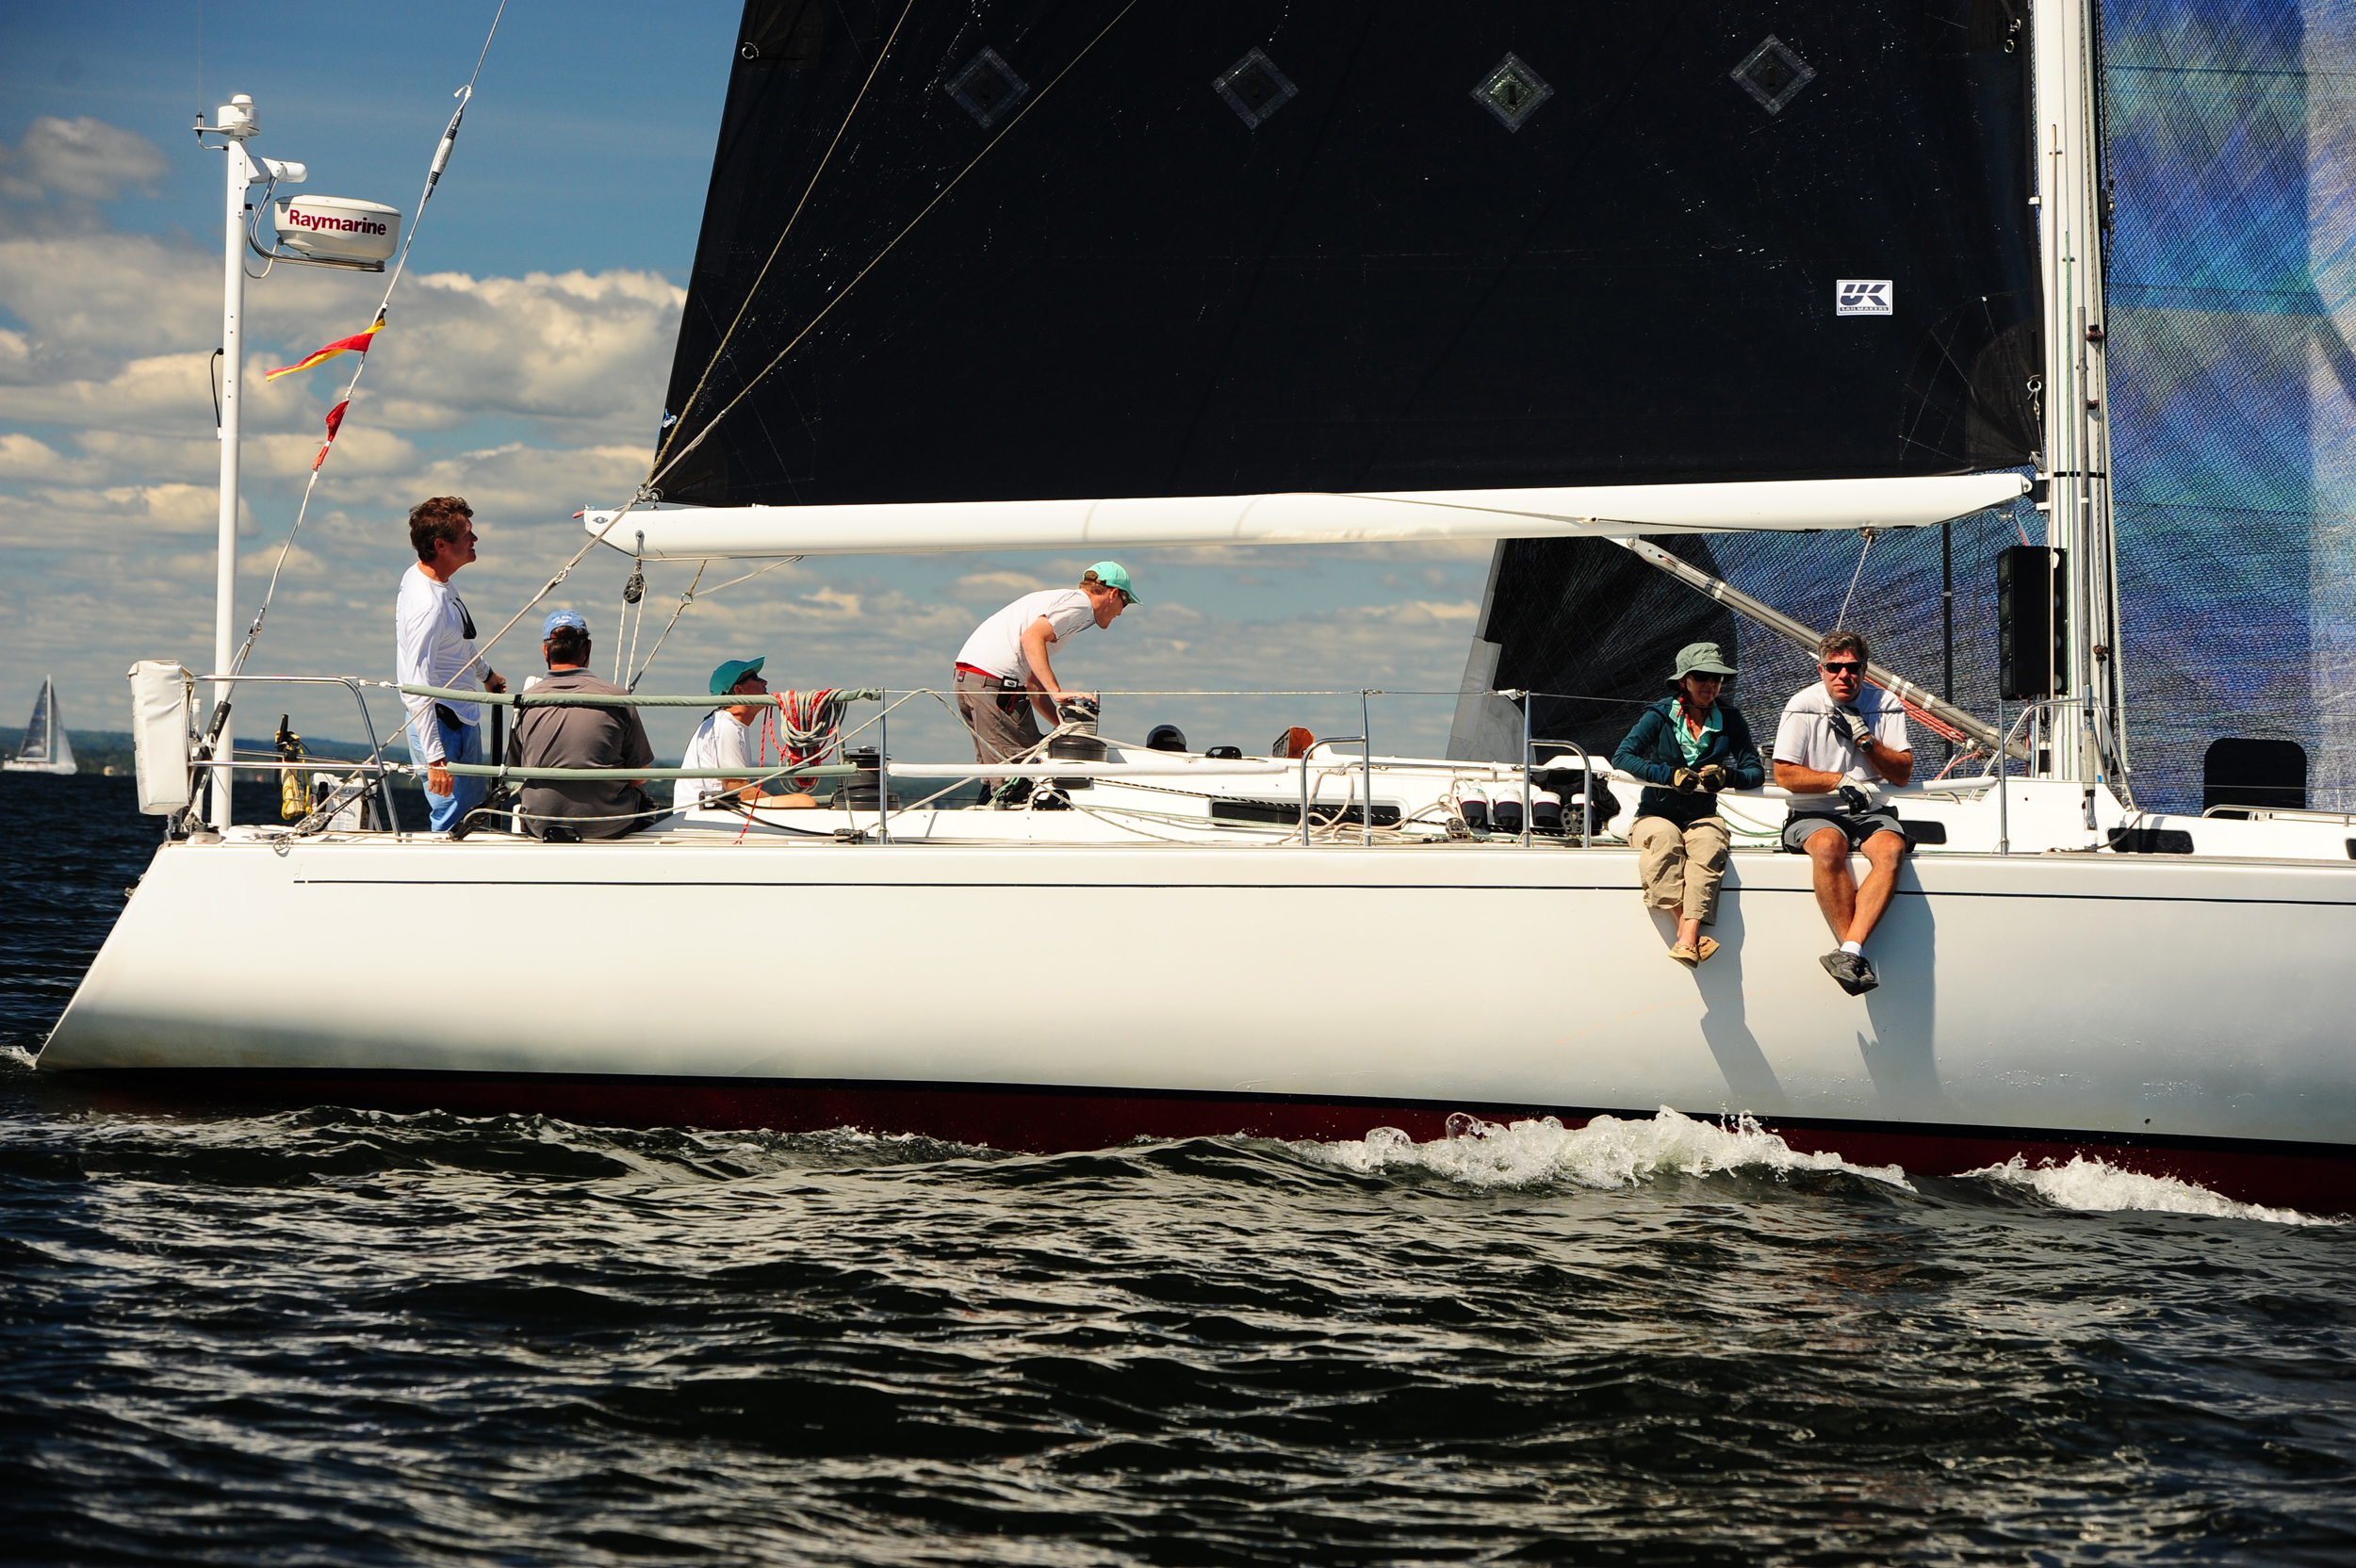 2014 Vineyard Race A 1670